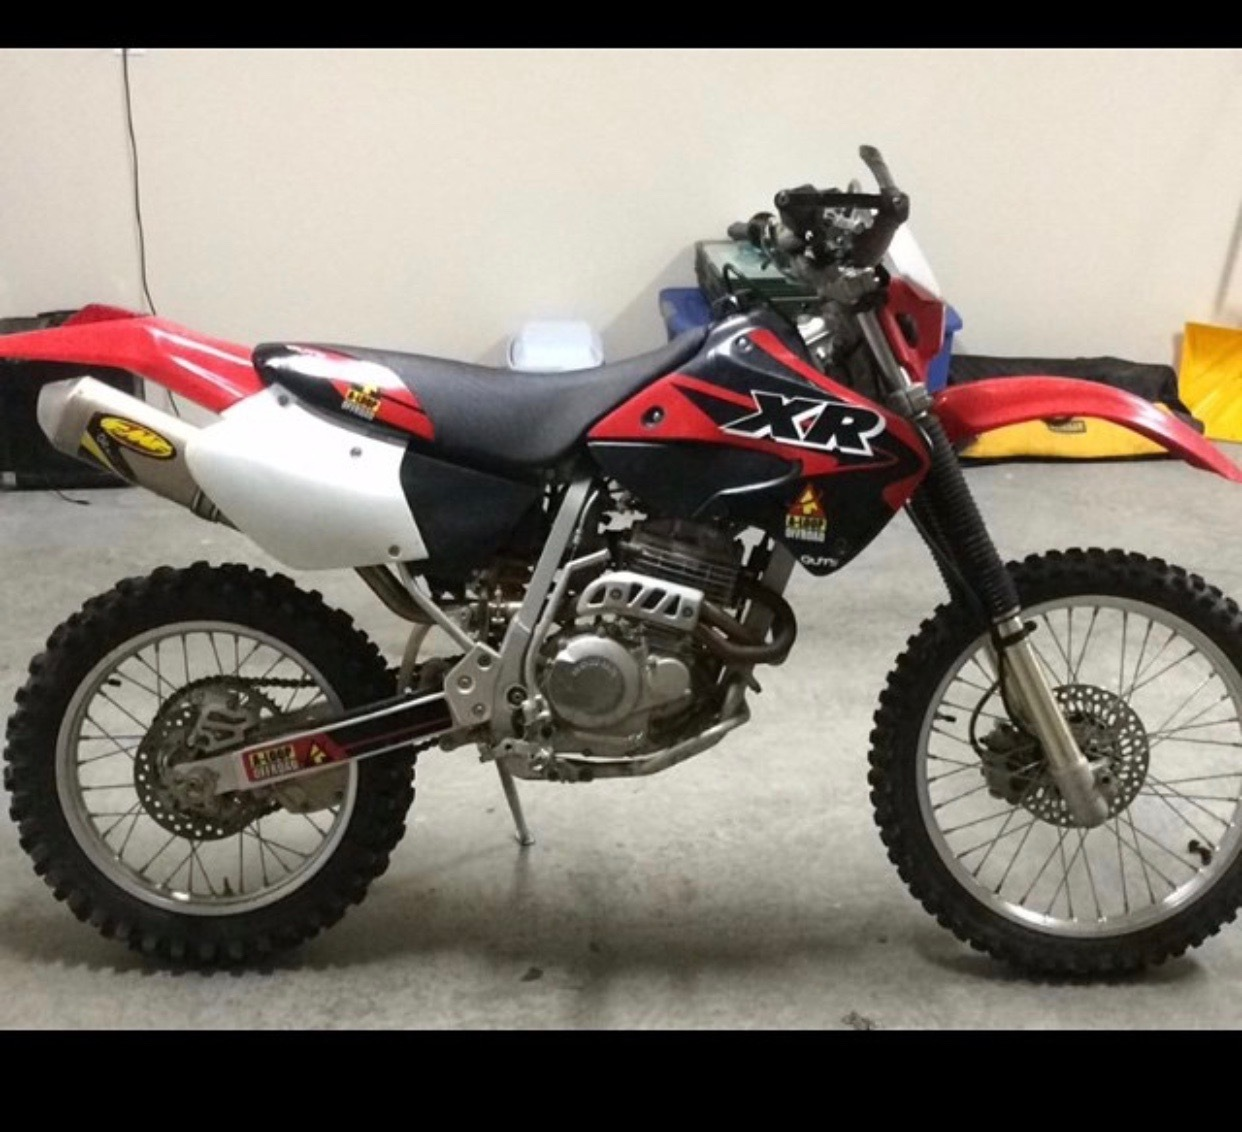 Honda Xr Motorcycles For Sale 452 Motorcycles Cycle Trader